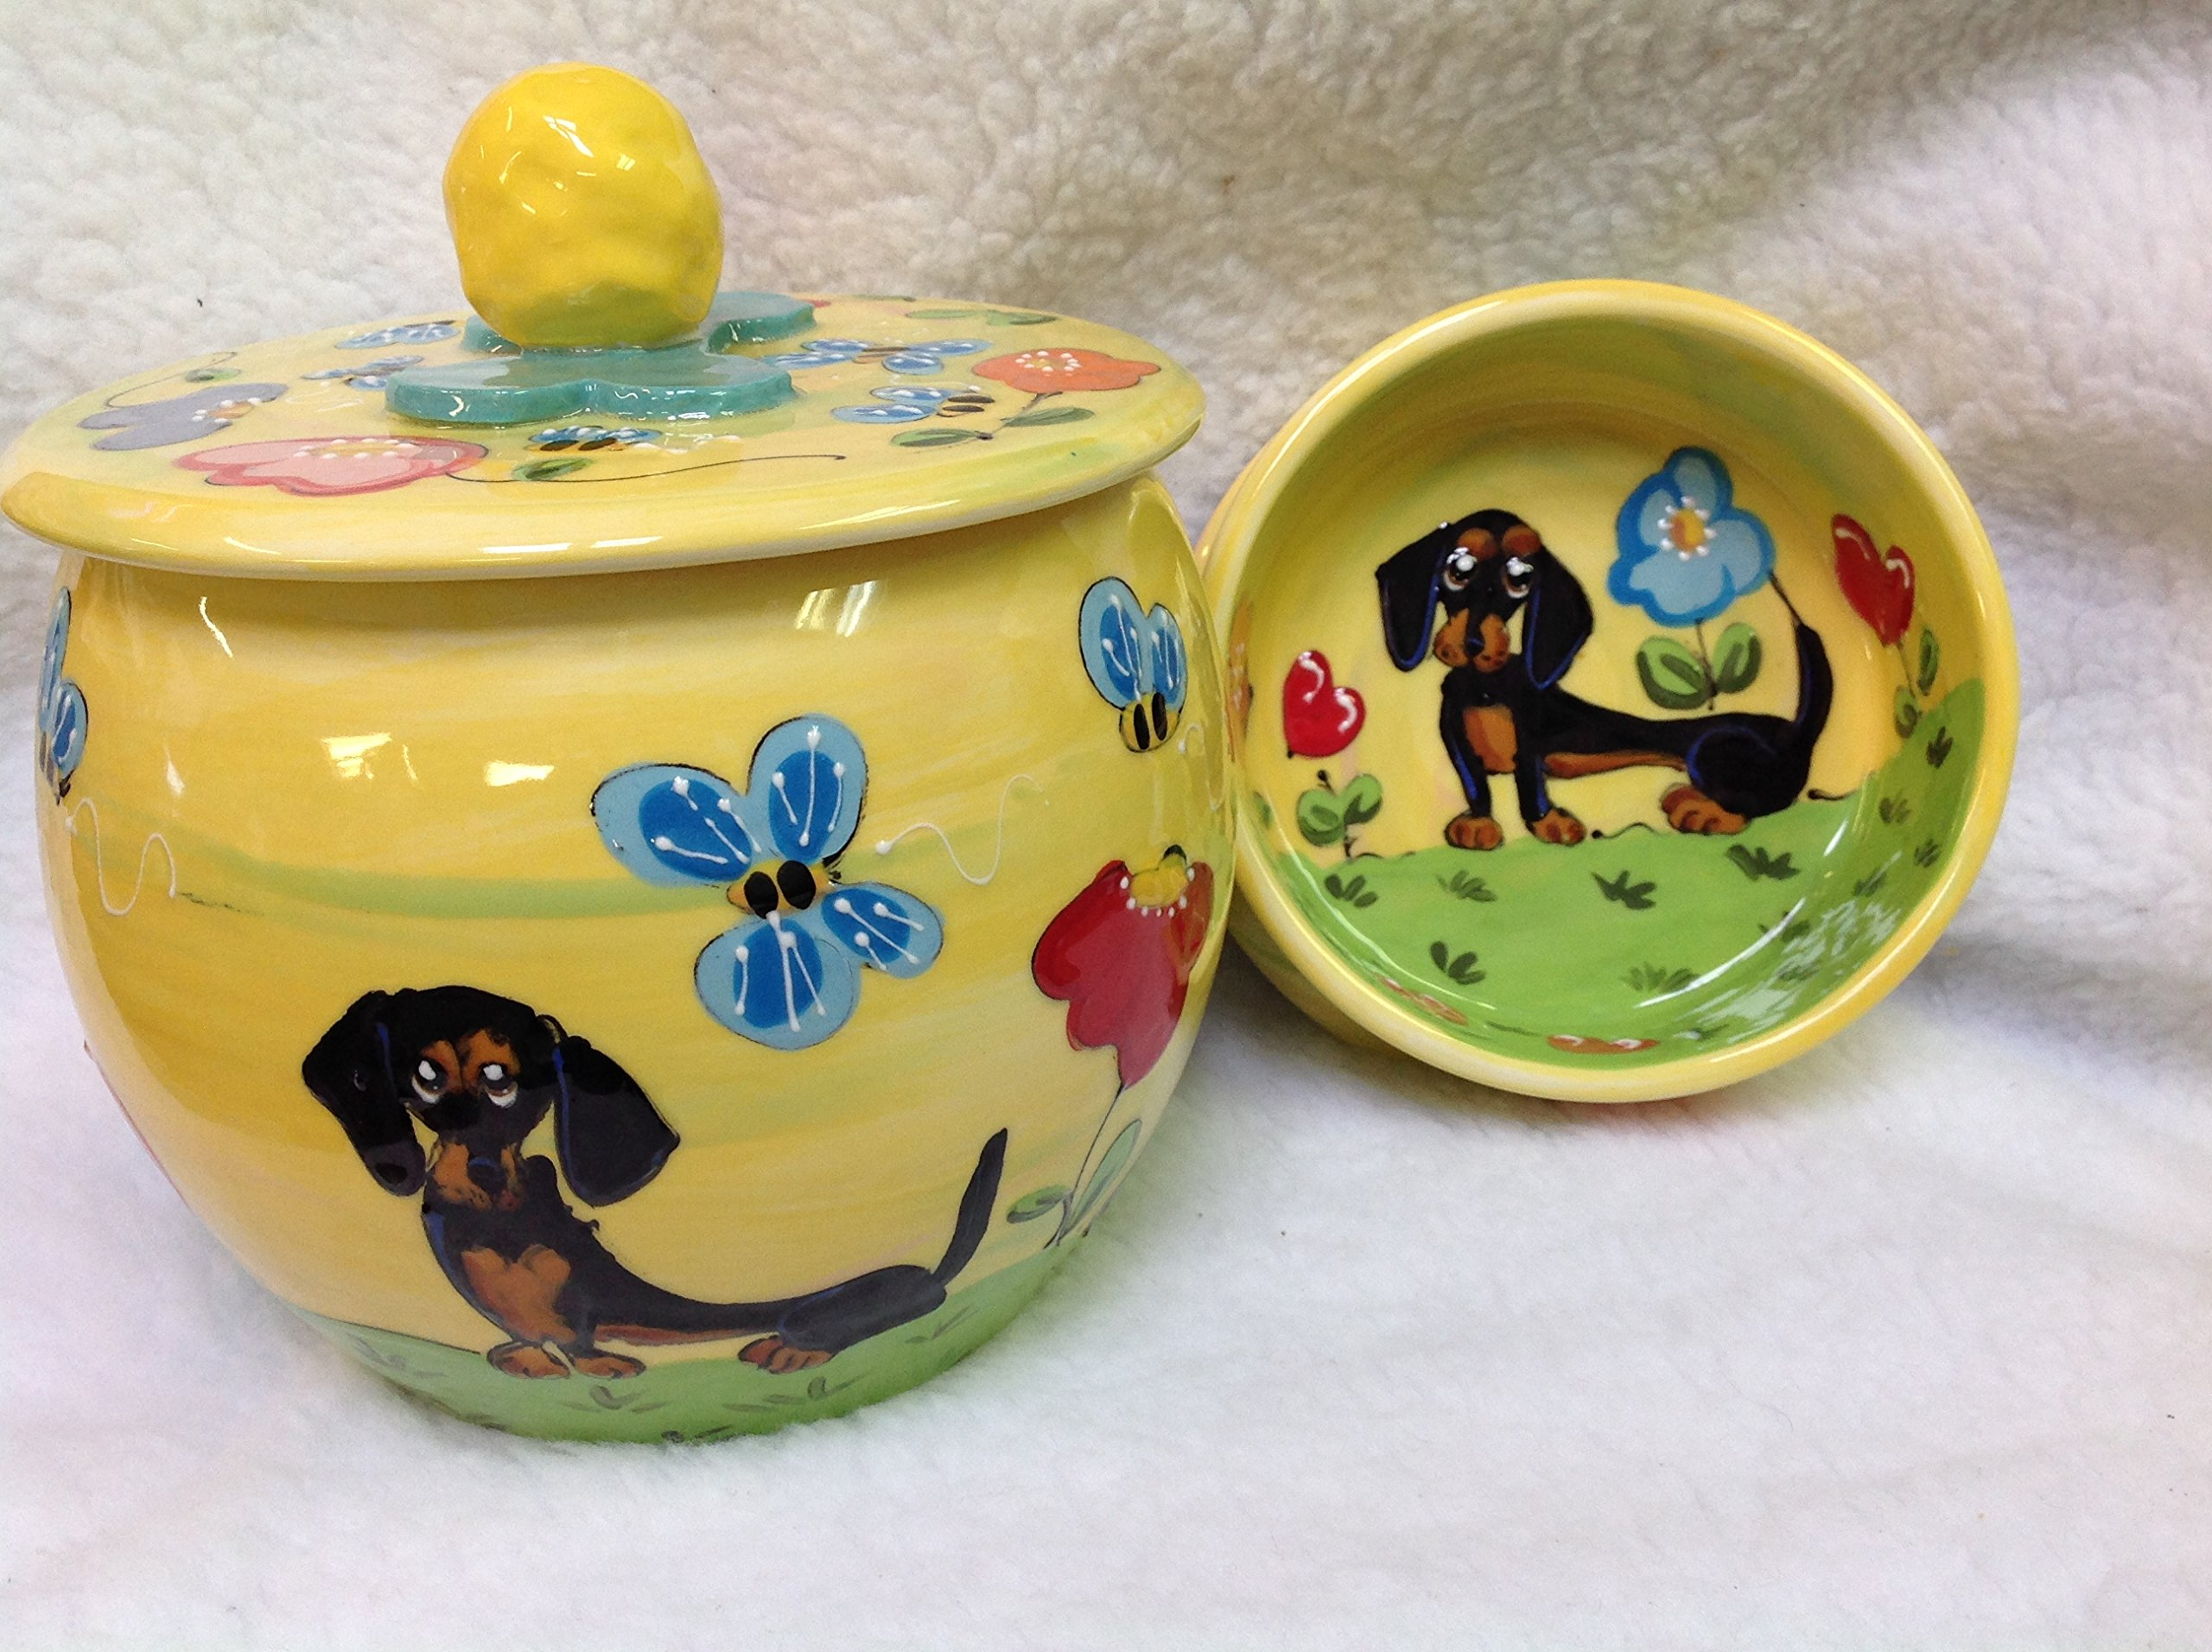 Dachshund 6'' Pet Bowl for Food or Water and Treat Jar, Personalized at no Charge. Signed by Artist, Debby Carman.